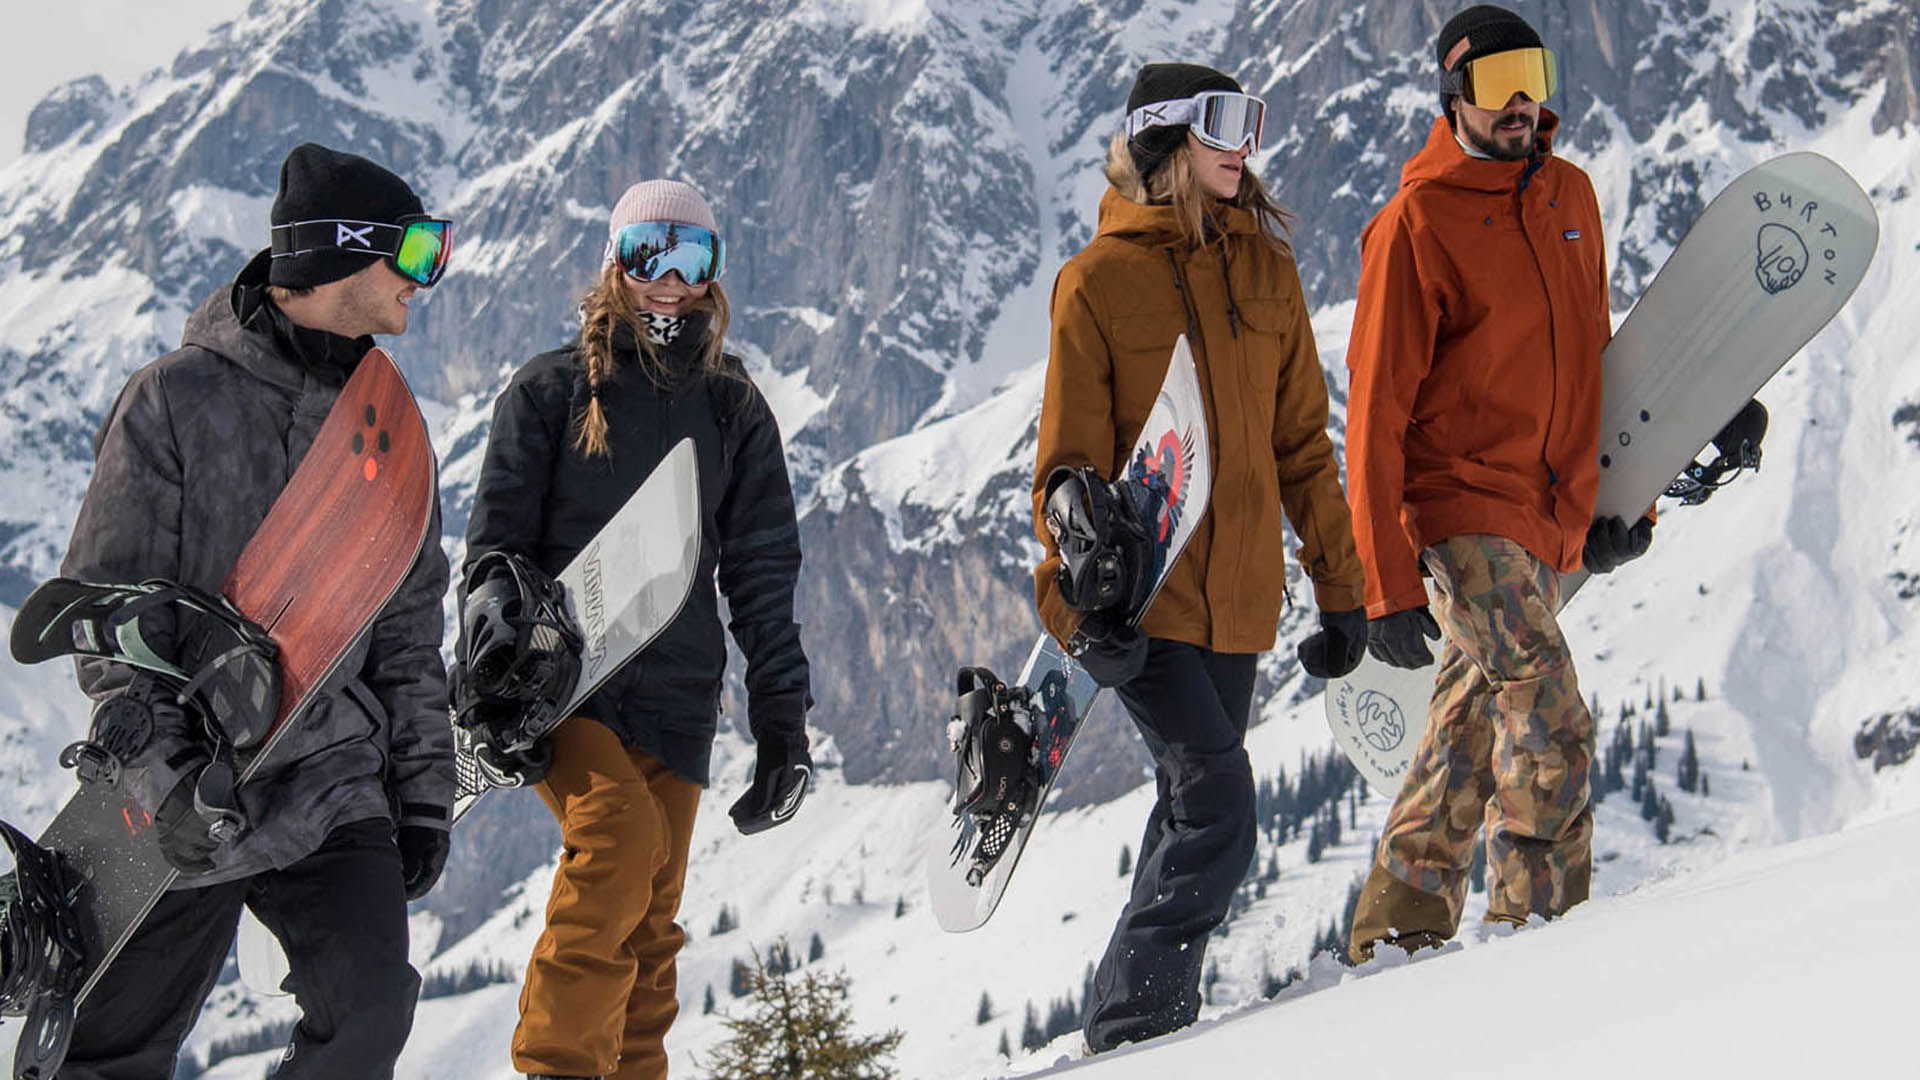 Four snowboarder hiking up the mountain